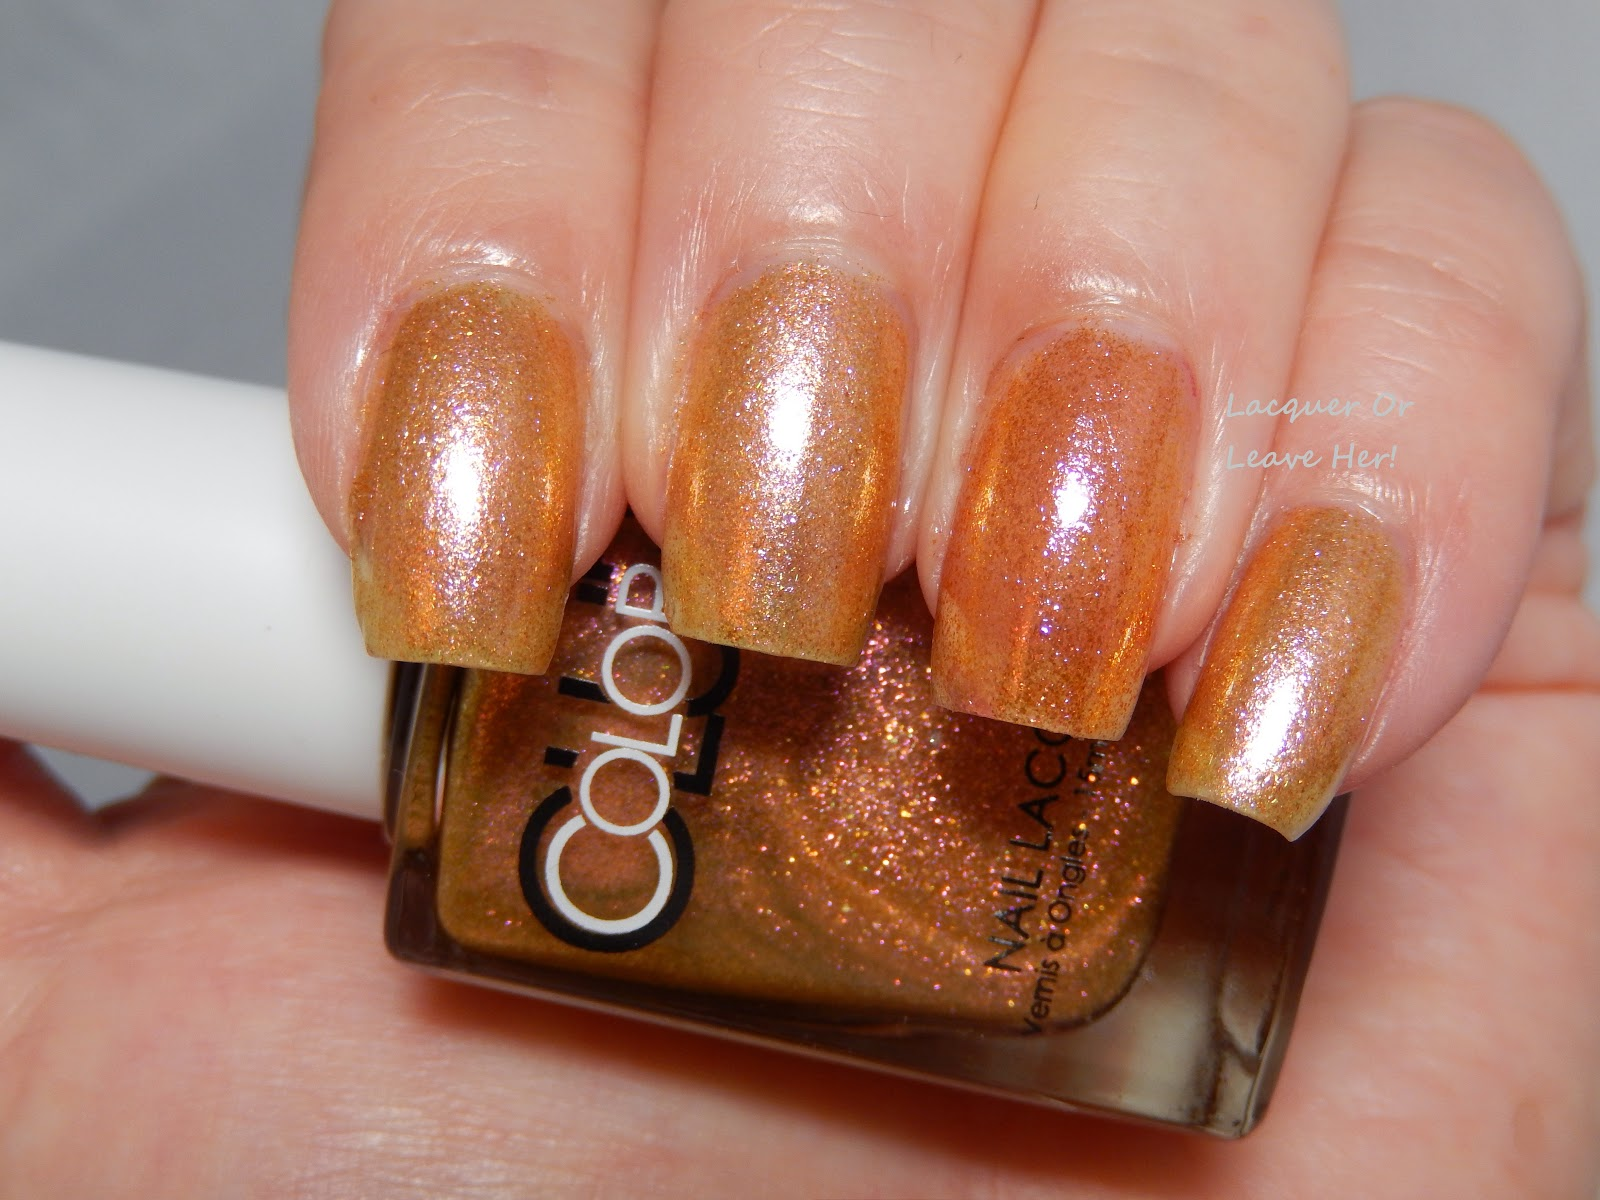 Color Club Lion's Den vs. Orly Brush It On